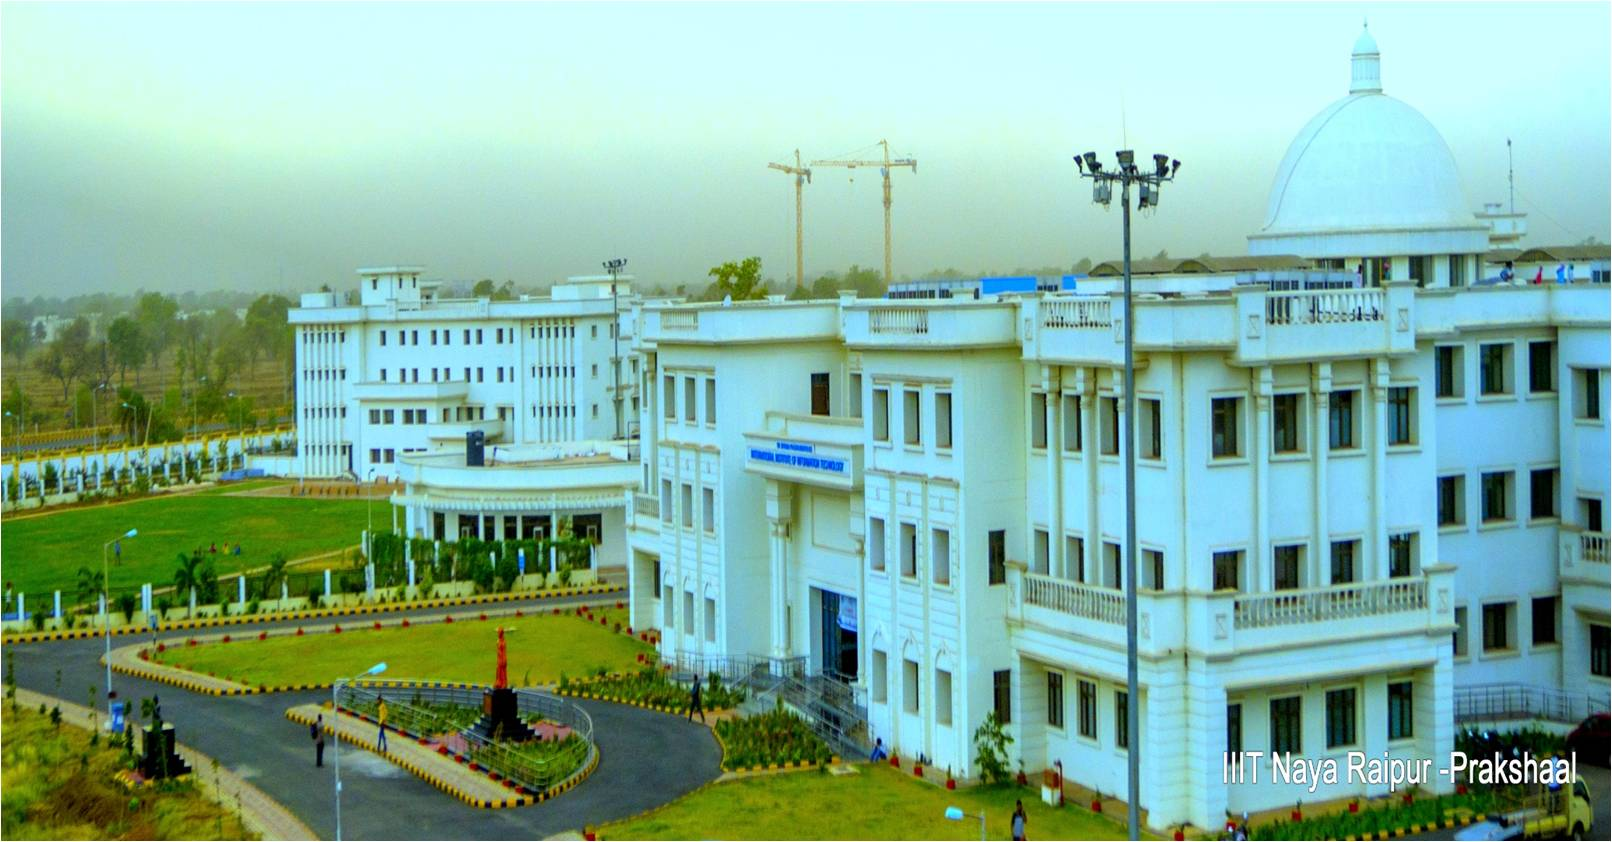 IIIT Naya Raipur invites application for B.Tech programs